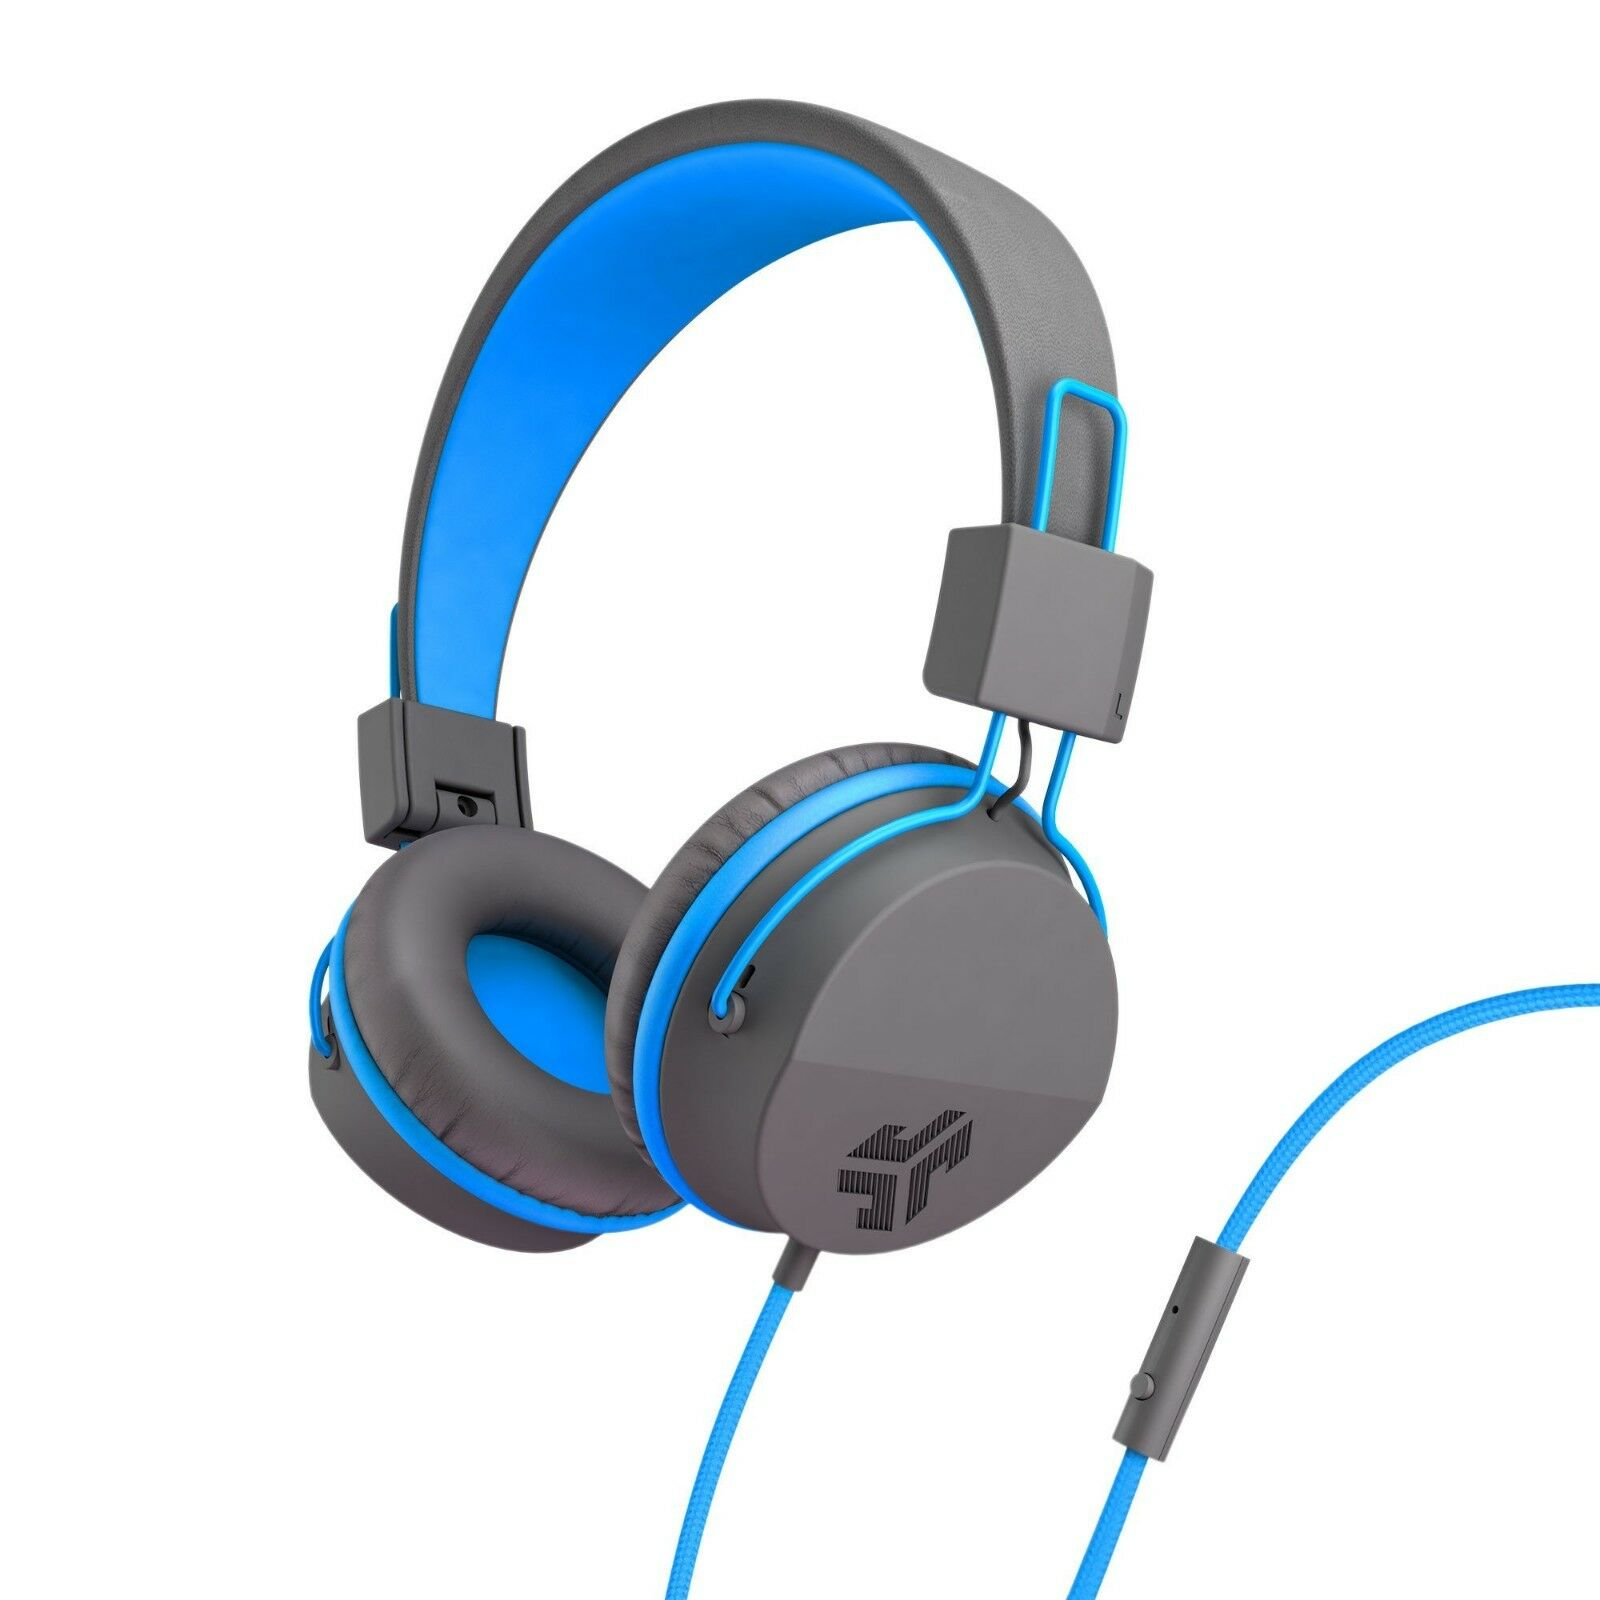 jlab-neon-wired-foldable-headphones-with-universal-mic-and-track-control-on-wire